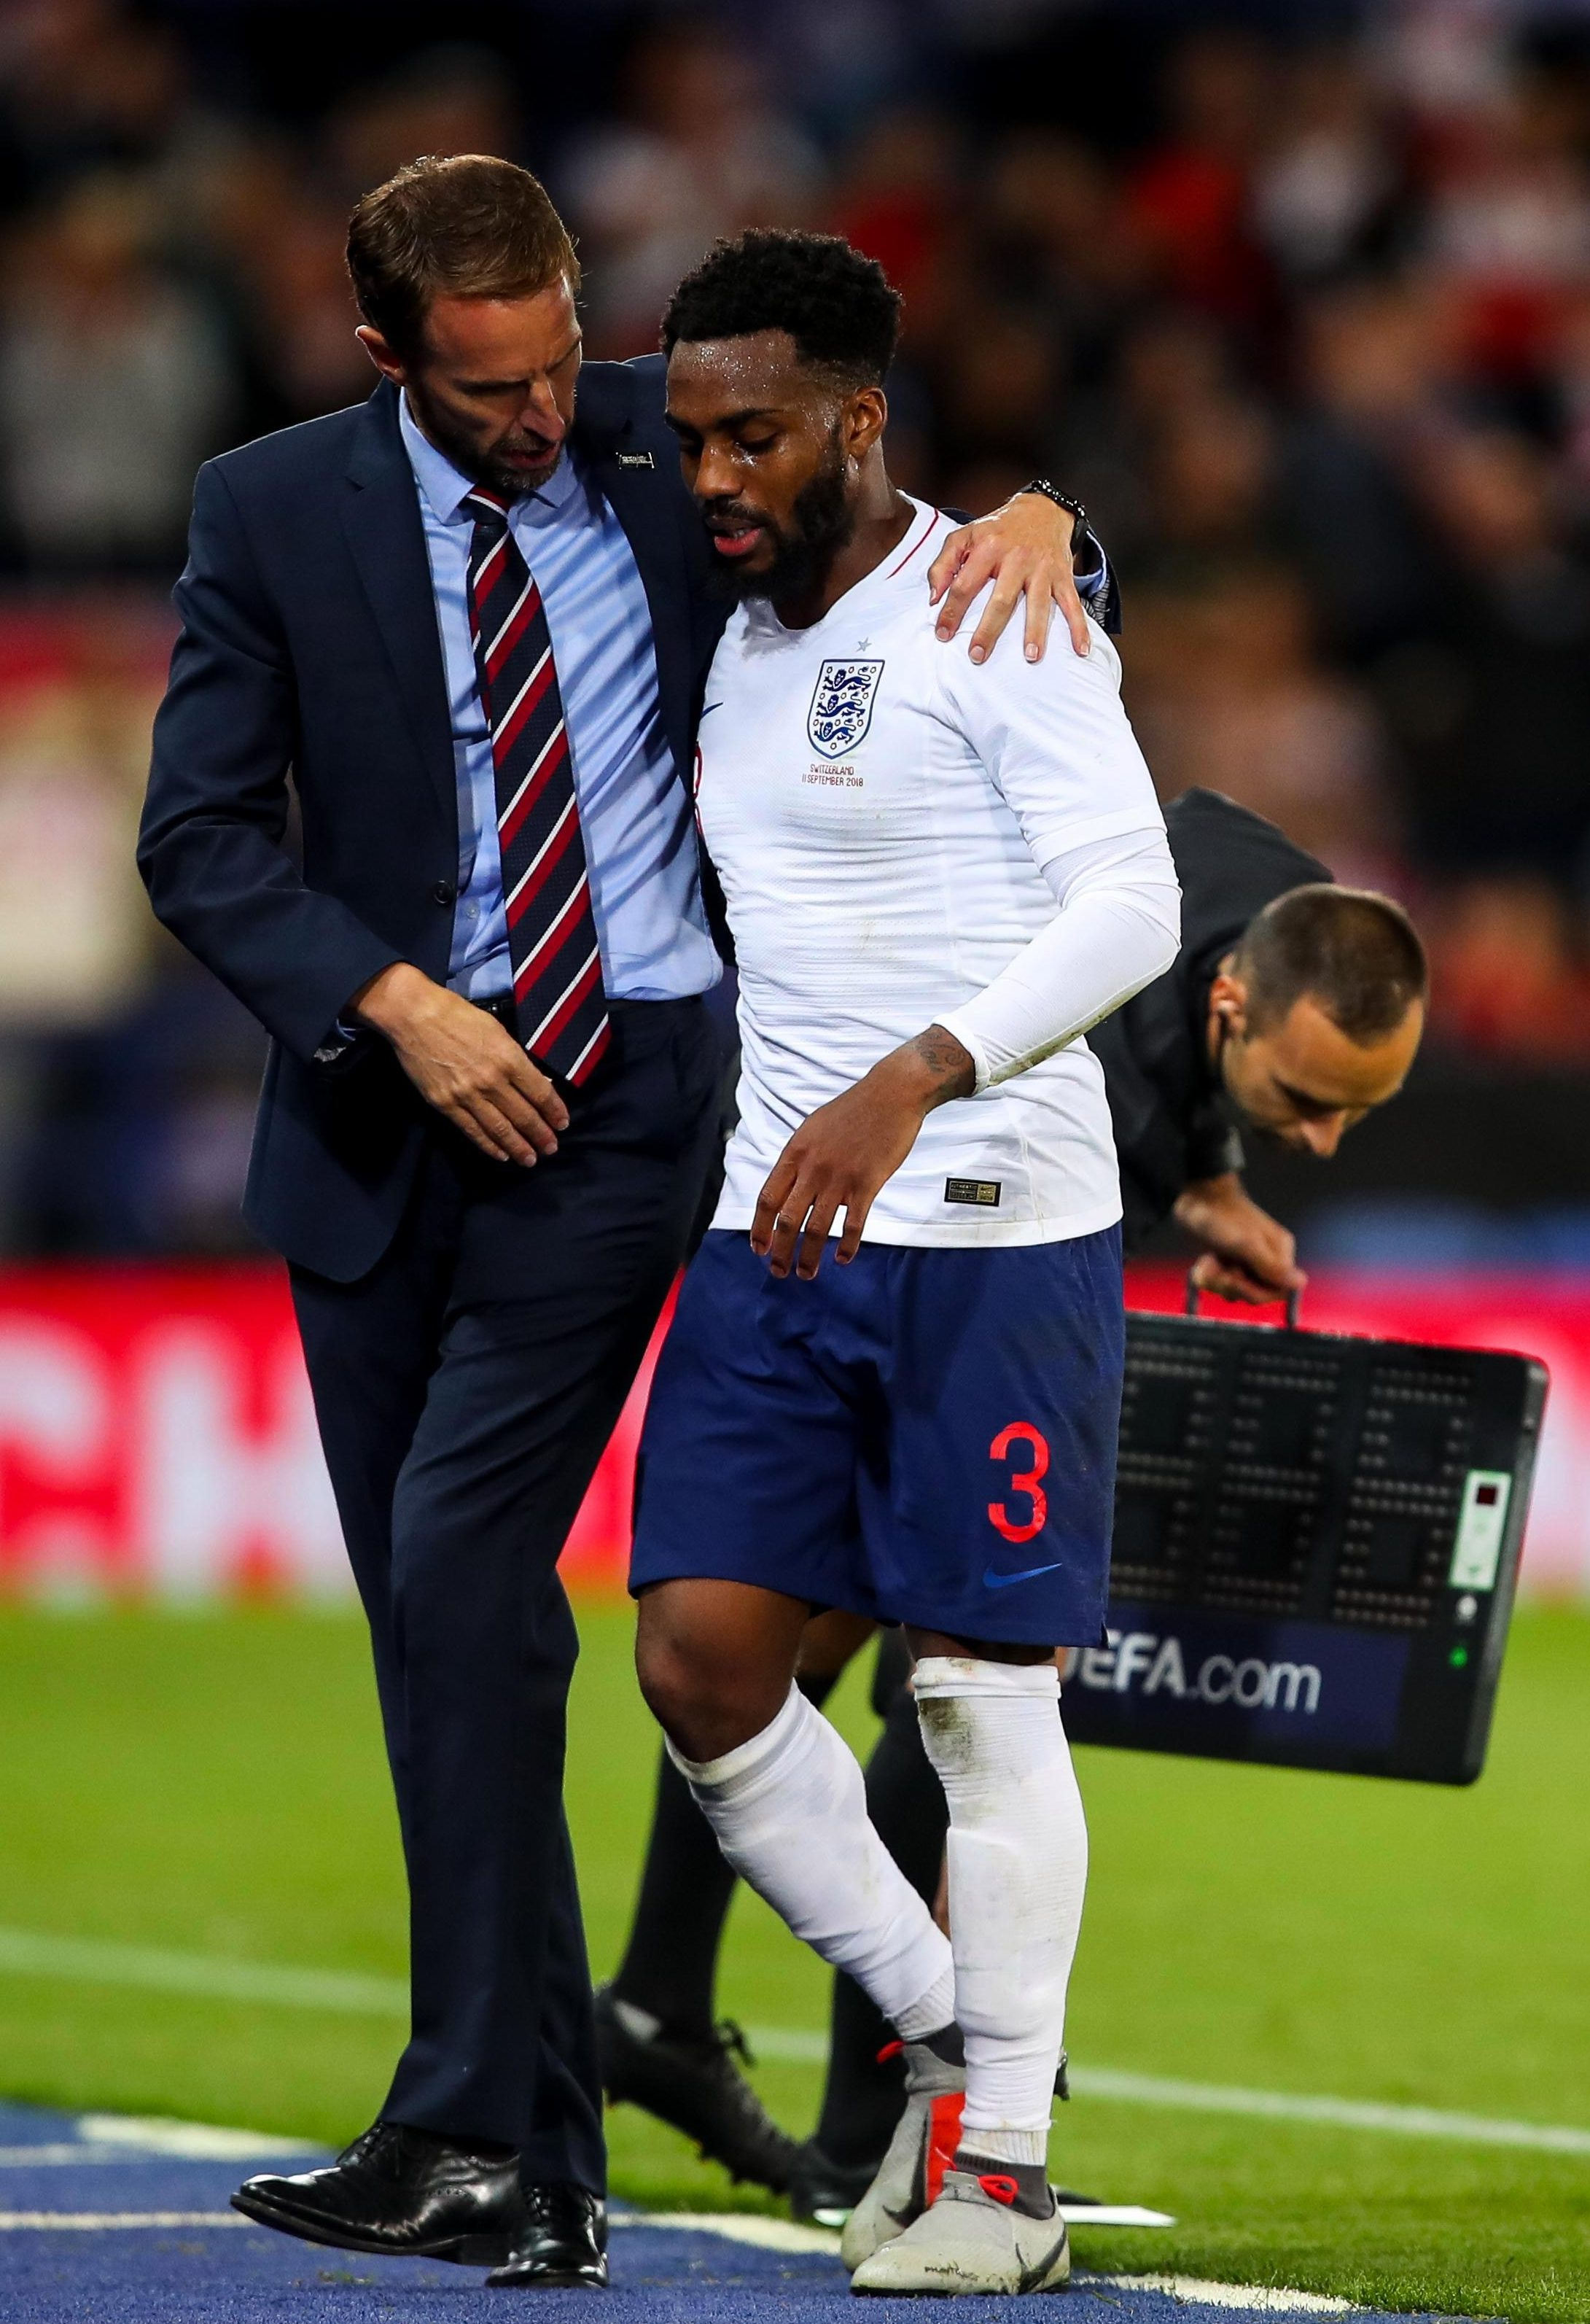 Gareth Southgate walked in after the England players had already had their chance to vent their views to each other